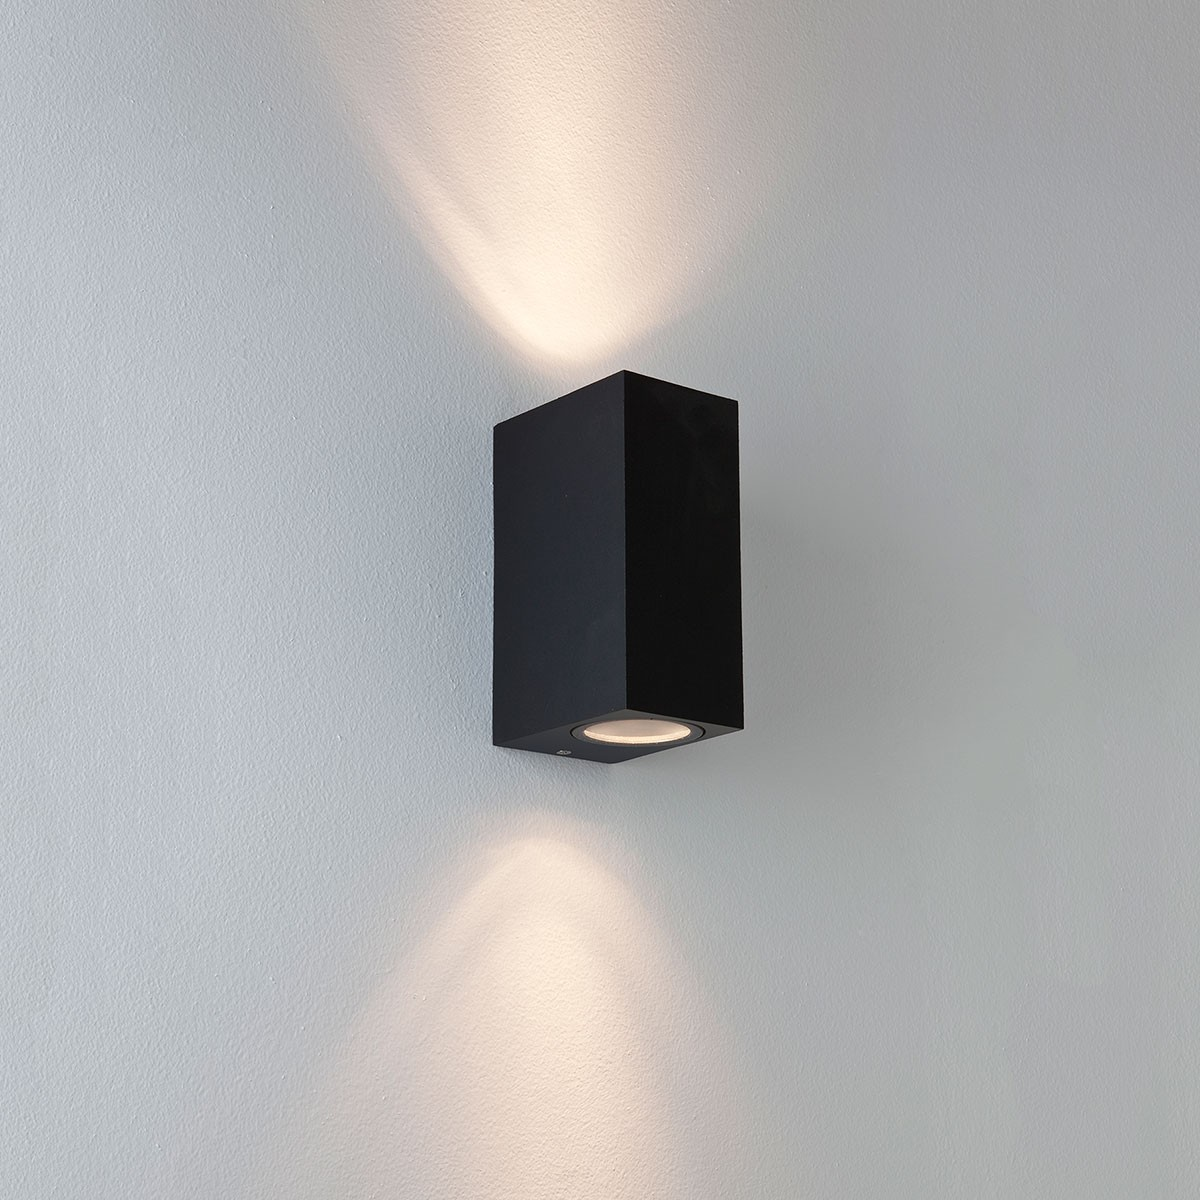 Luxury Exterior Wall Lights : Astro Chios 150 Black Outdoor Wall Light at UK Electrical Supplies.